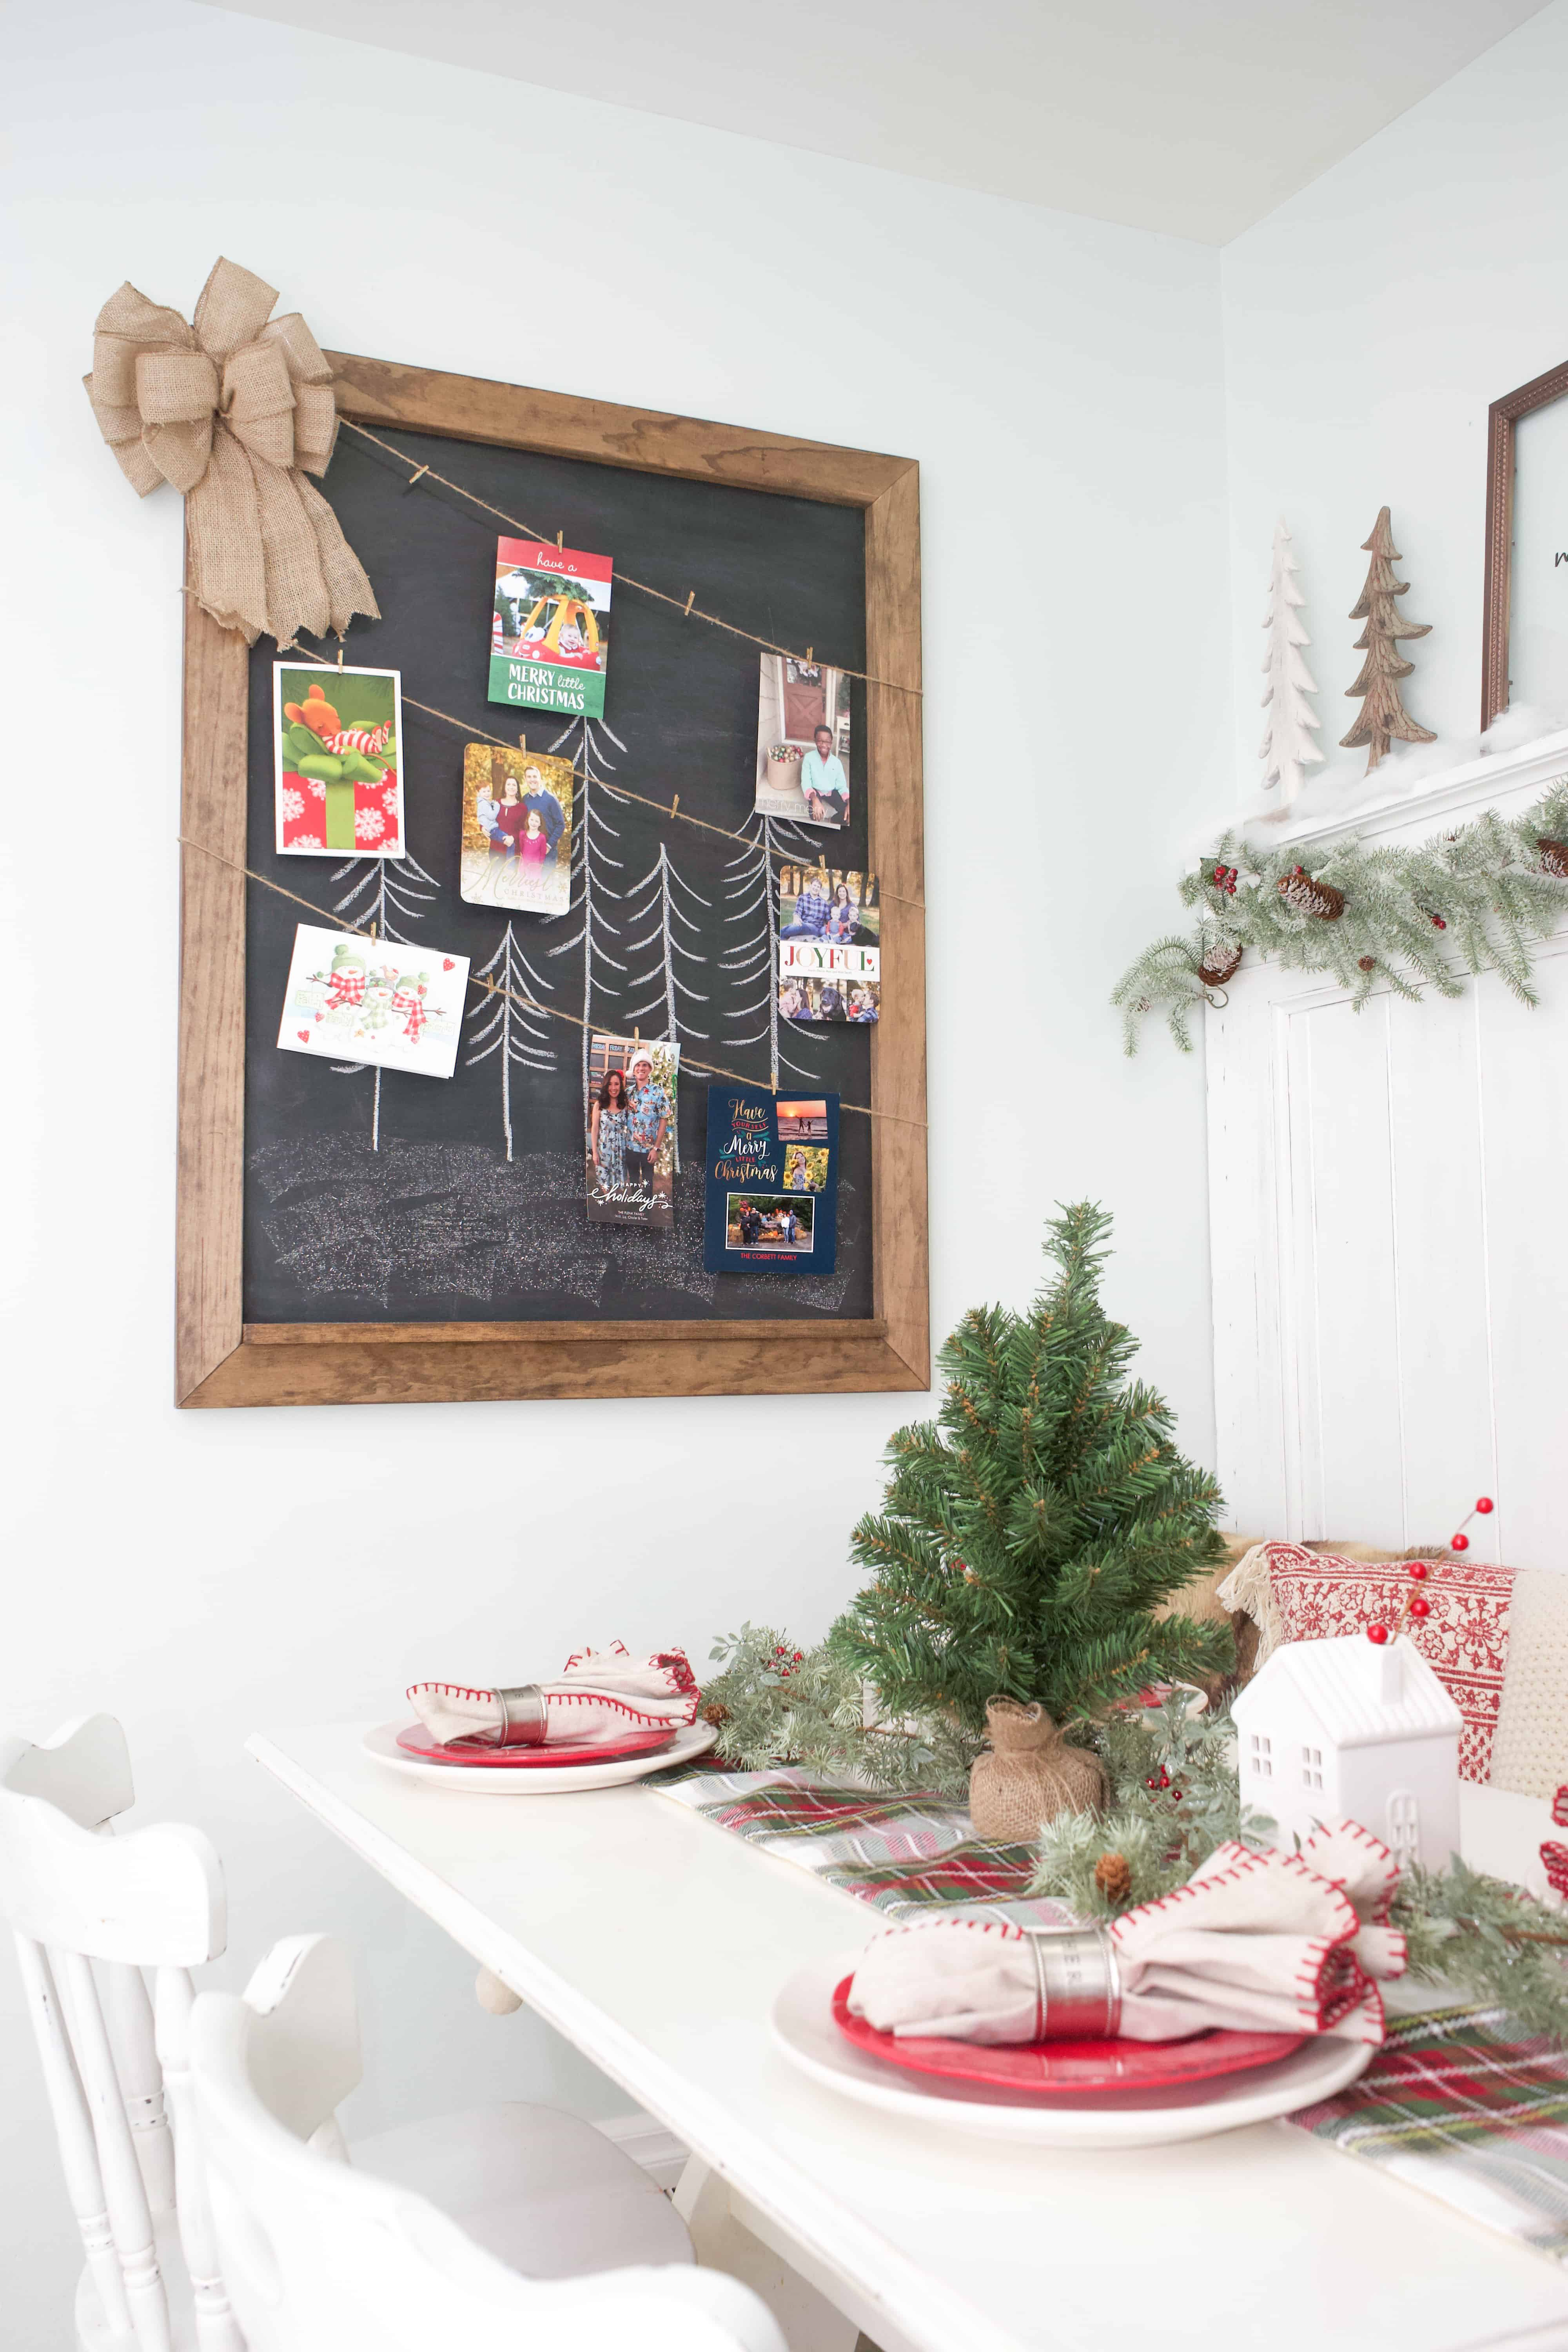 Don't you just love getting Christmas cards in the mail? Here's a super simple way to turn any large wall hanging into a fabulous Christmas card display.